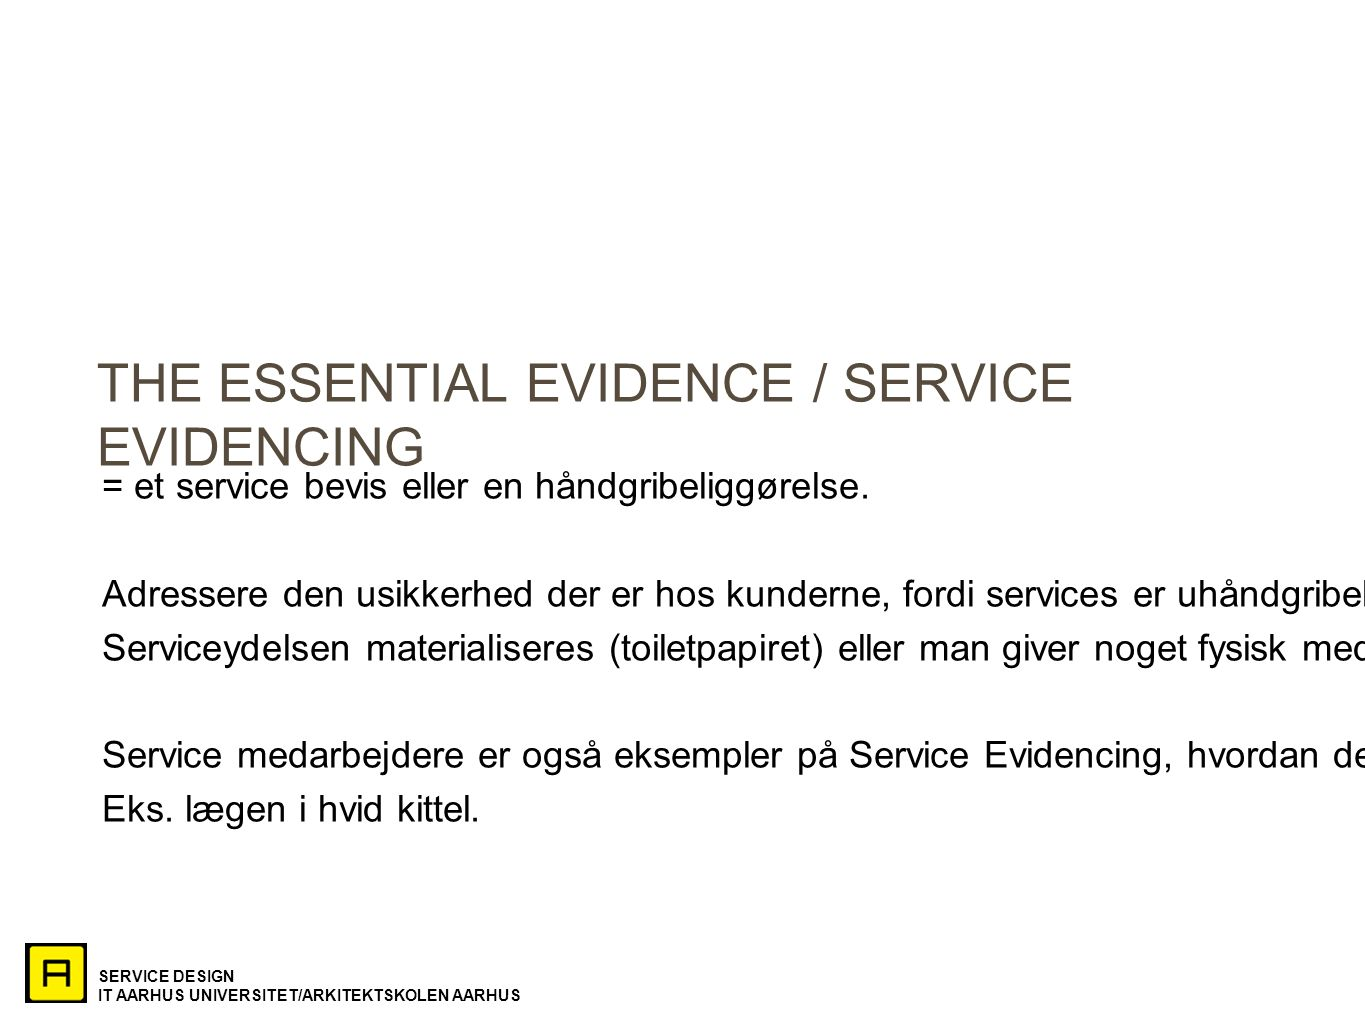 THE ESSENTIAL EVIDENCE / SERVICE EVIDENCING